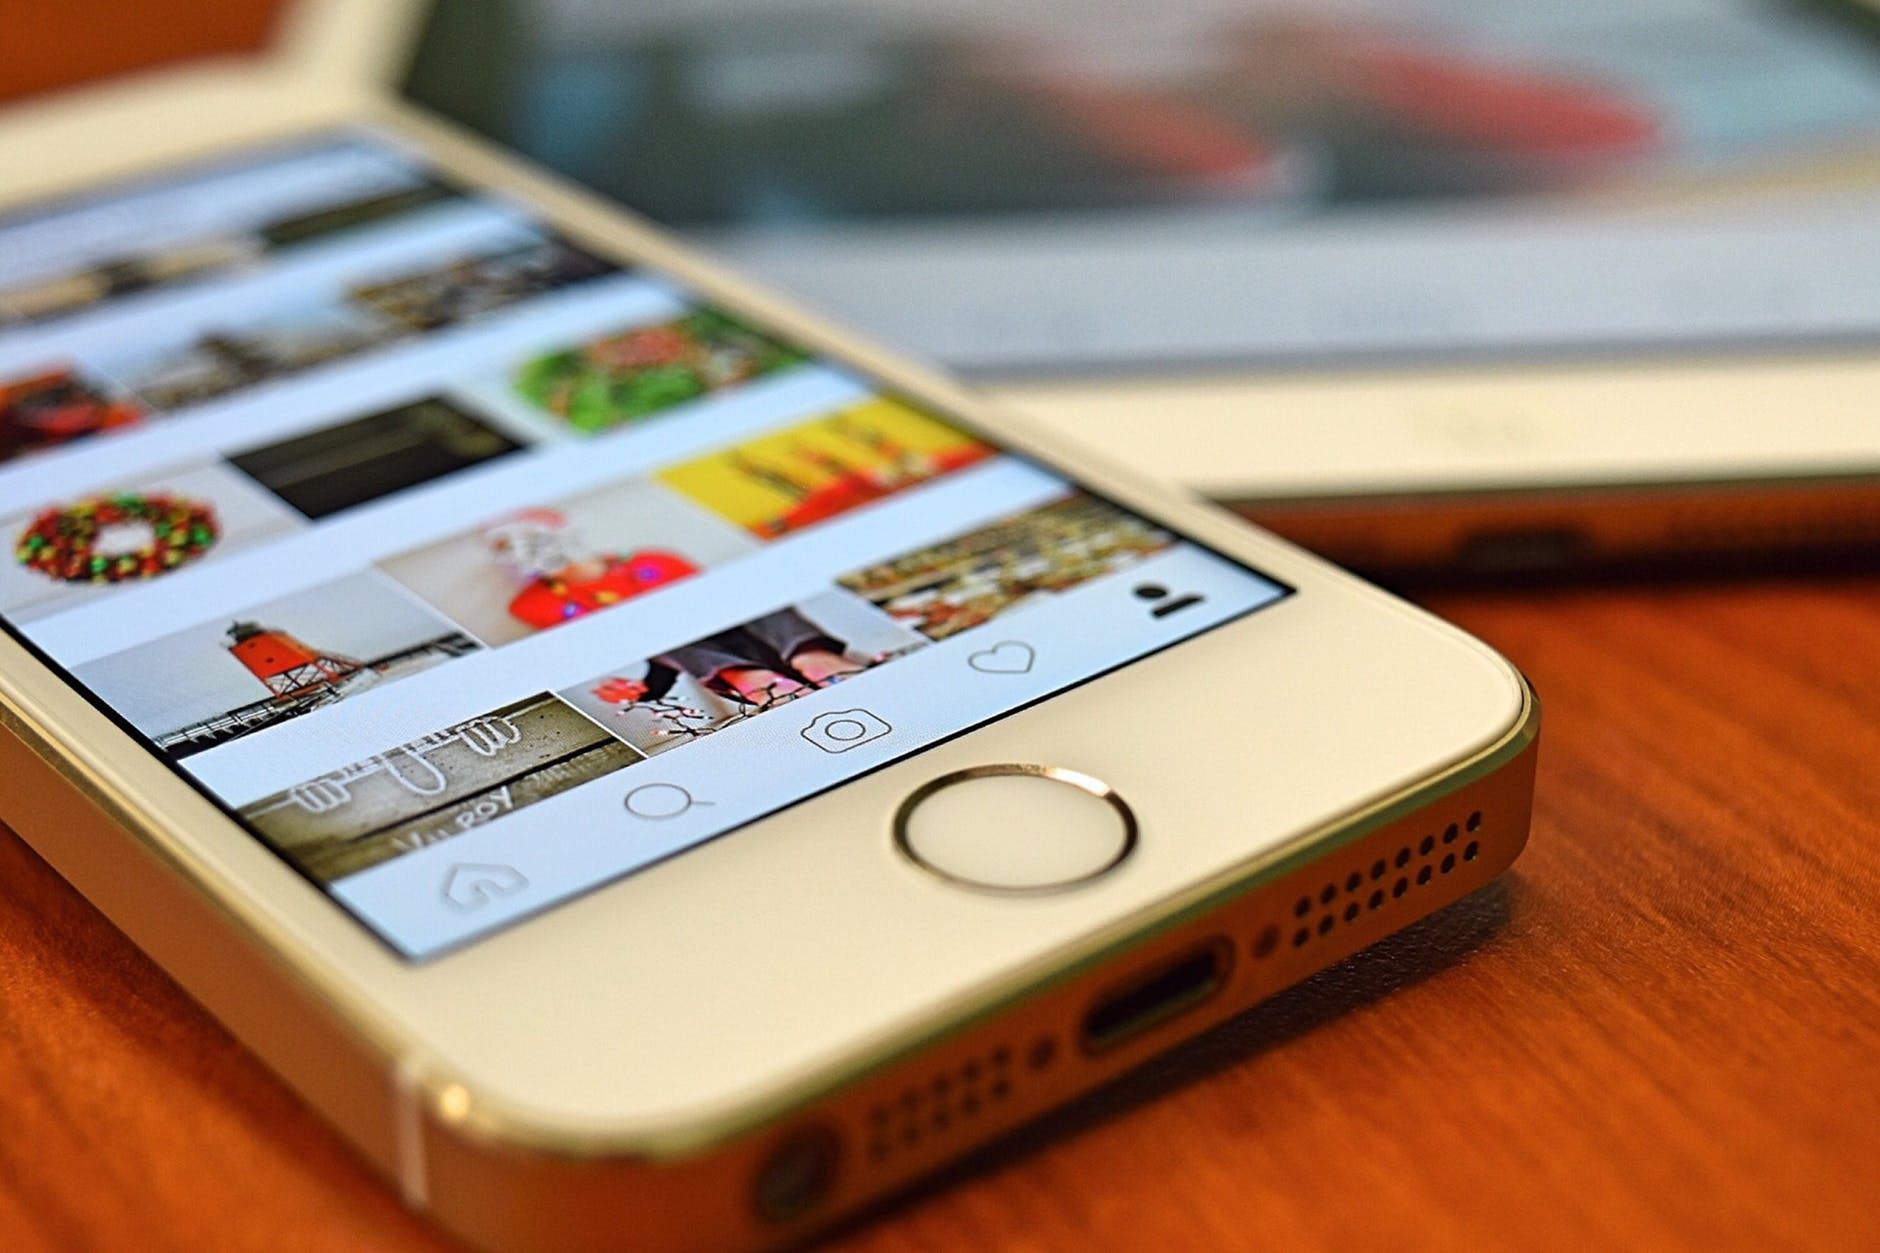 Threads, The New Instagram Feature To Share Intimacy With Your Best Friends